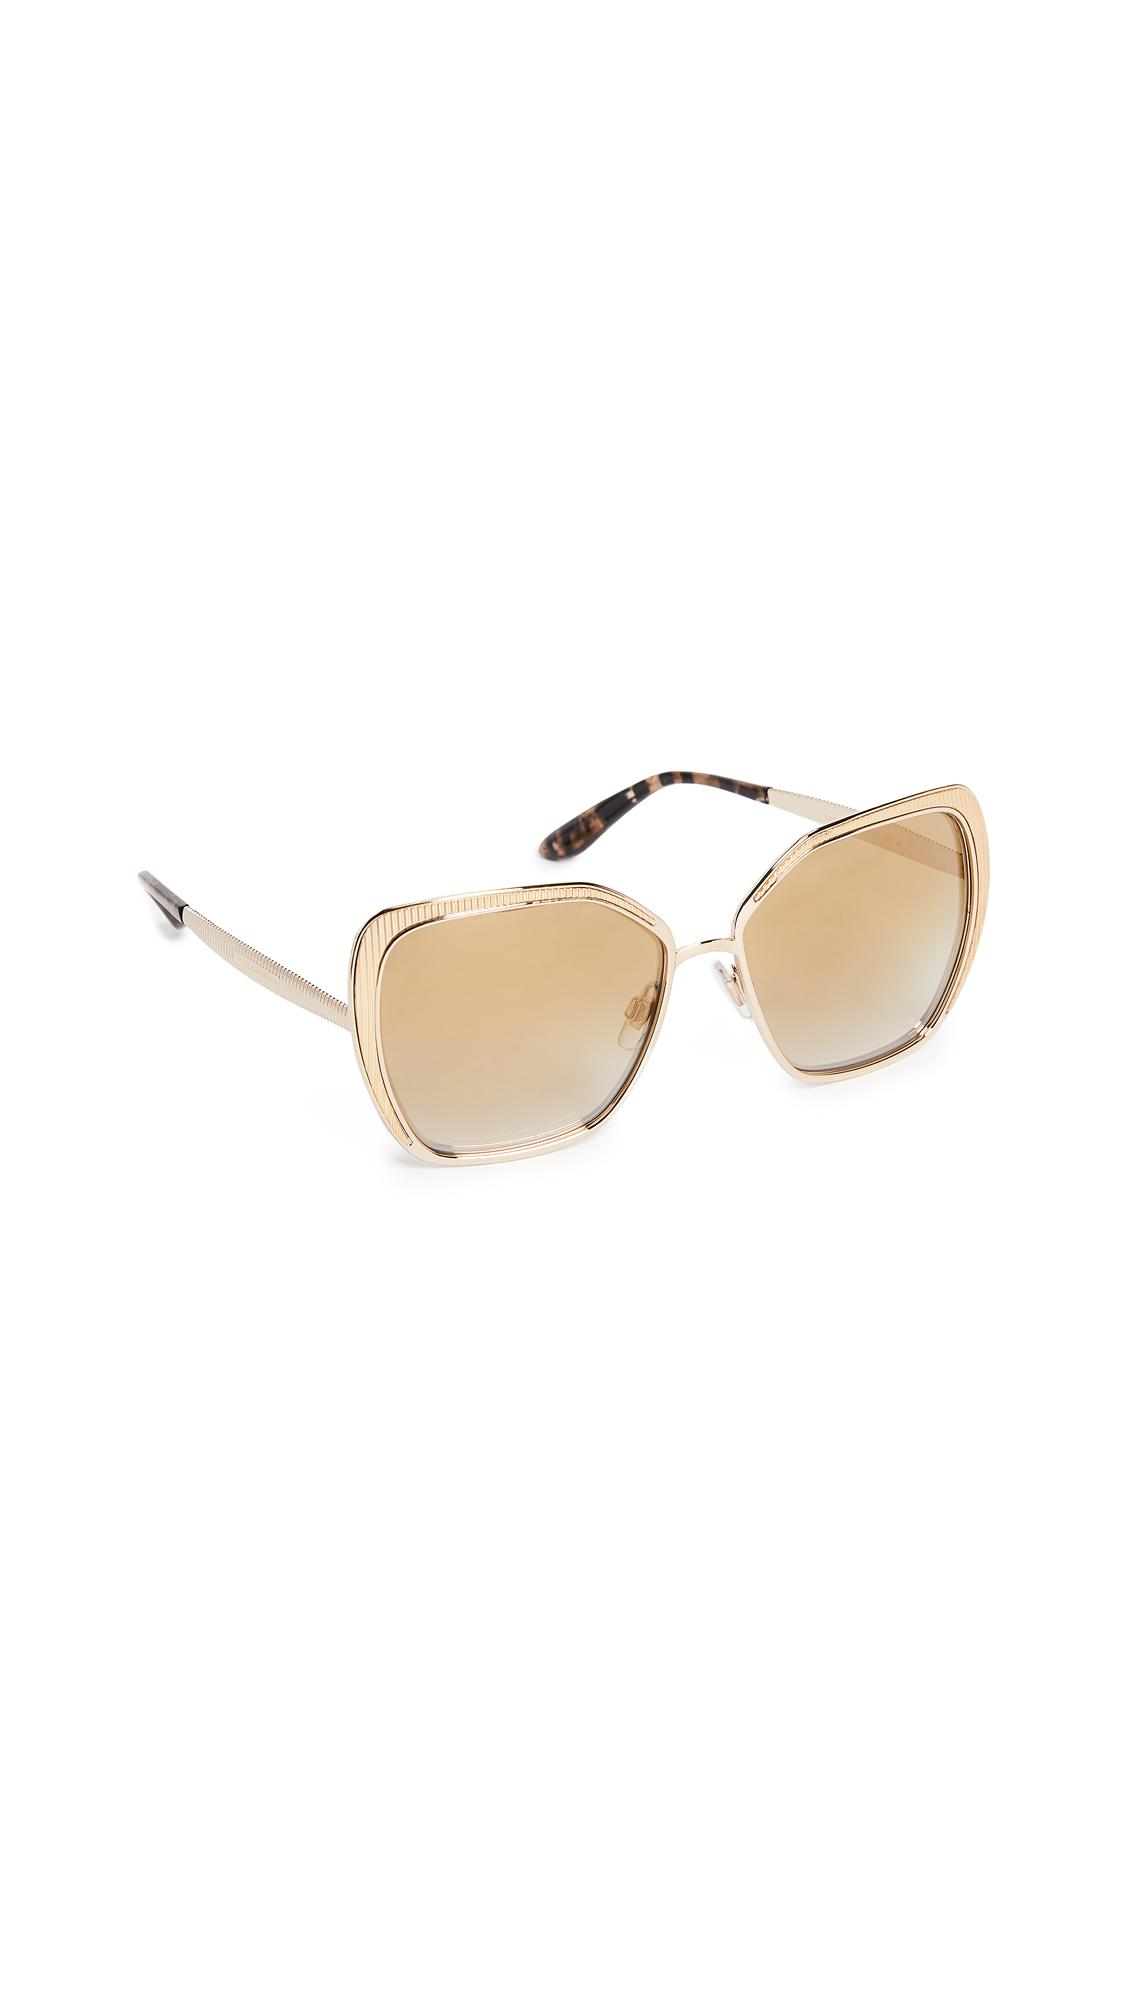 Dolce & Gabbana Square Fluted Sunglasses In Gold/gold